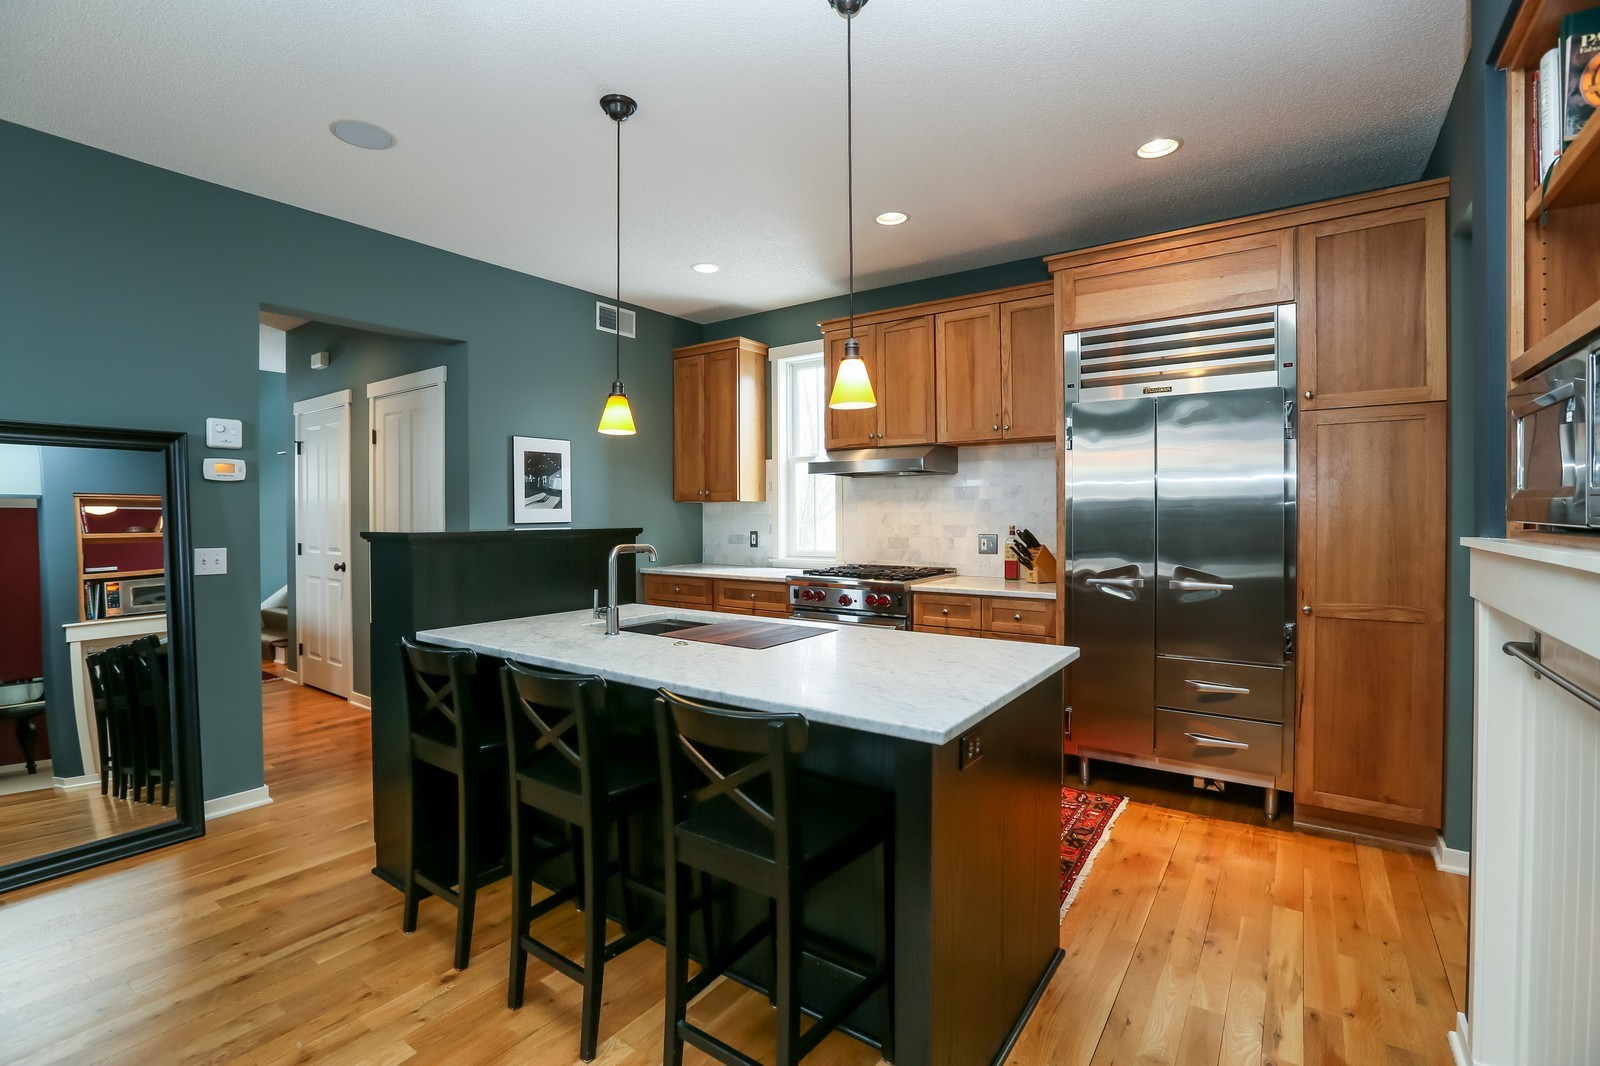 Real Estate Photography - 170 Rutherford Rd, Stillwater, MN, 55082 - Kitchen